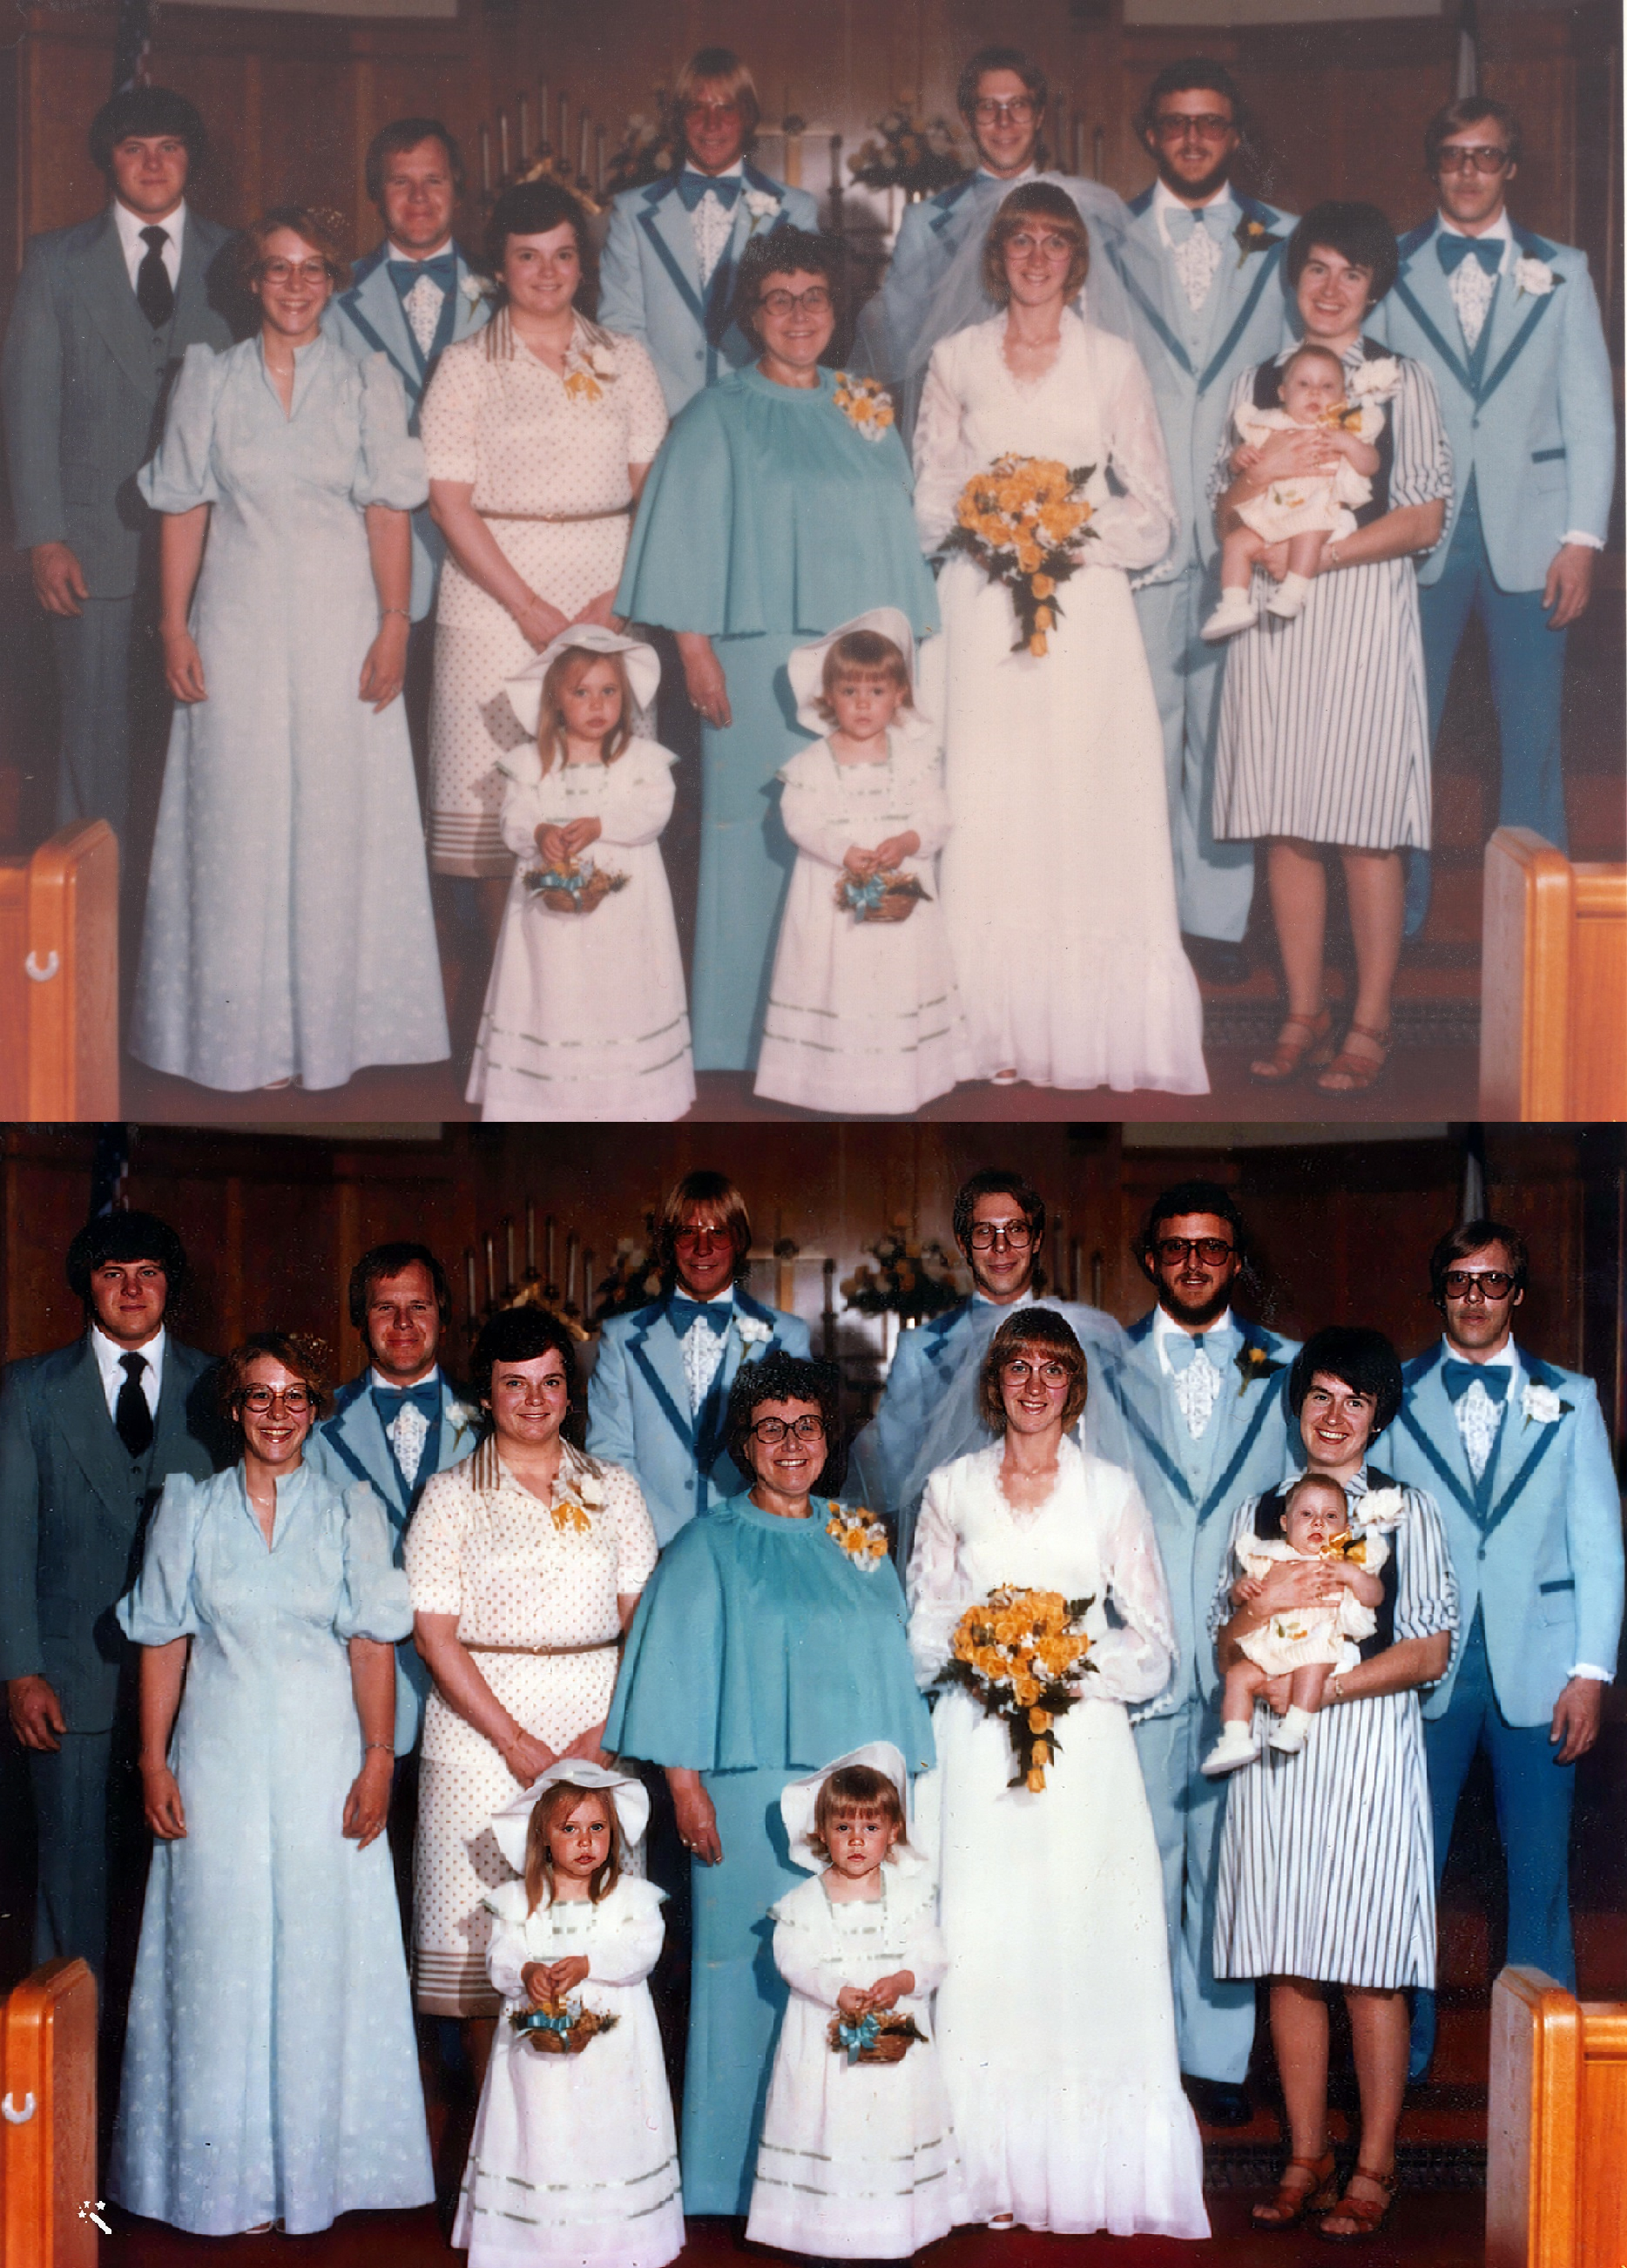 Wedding of Larry and Kathryn Nelson, May 19, 1979